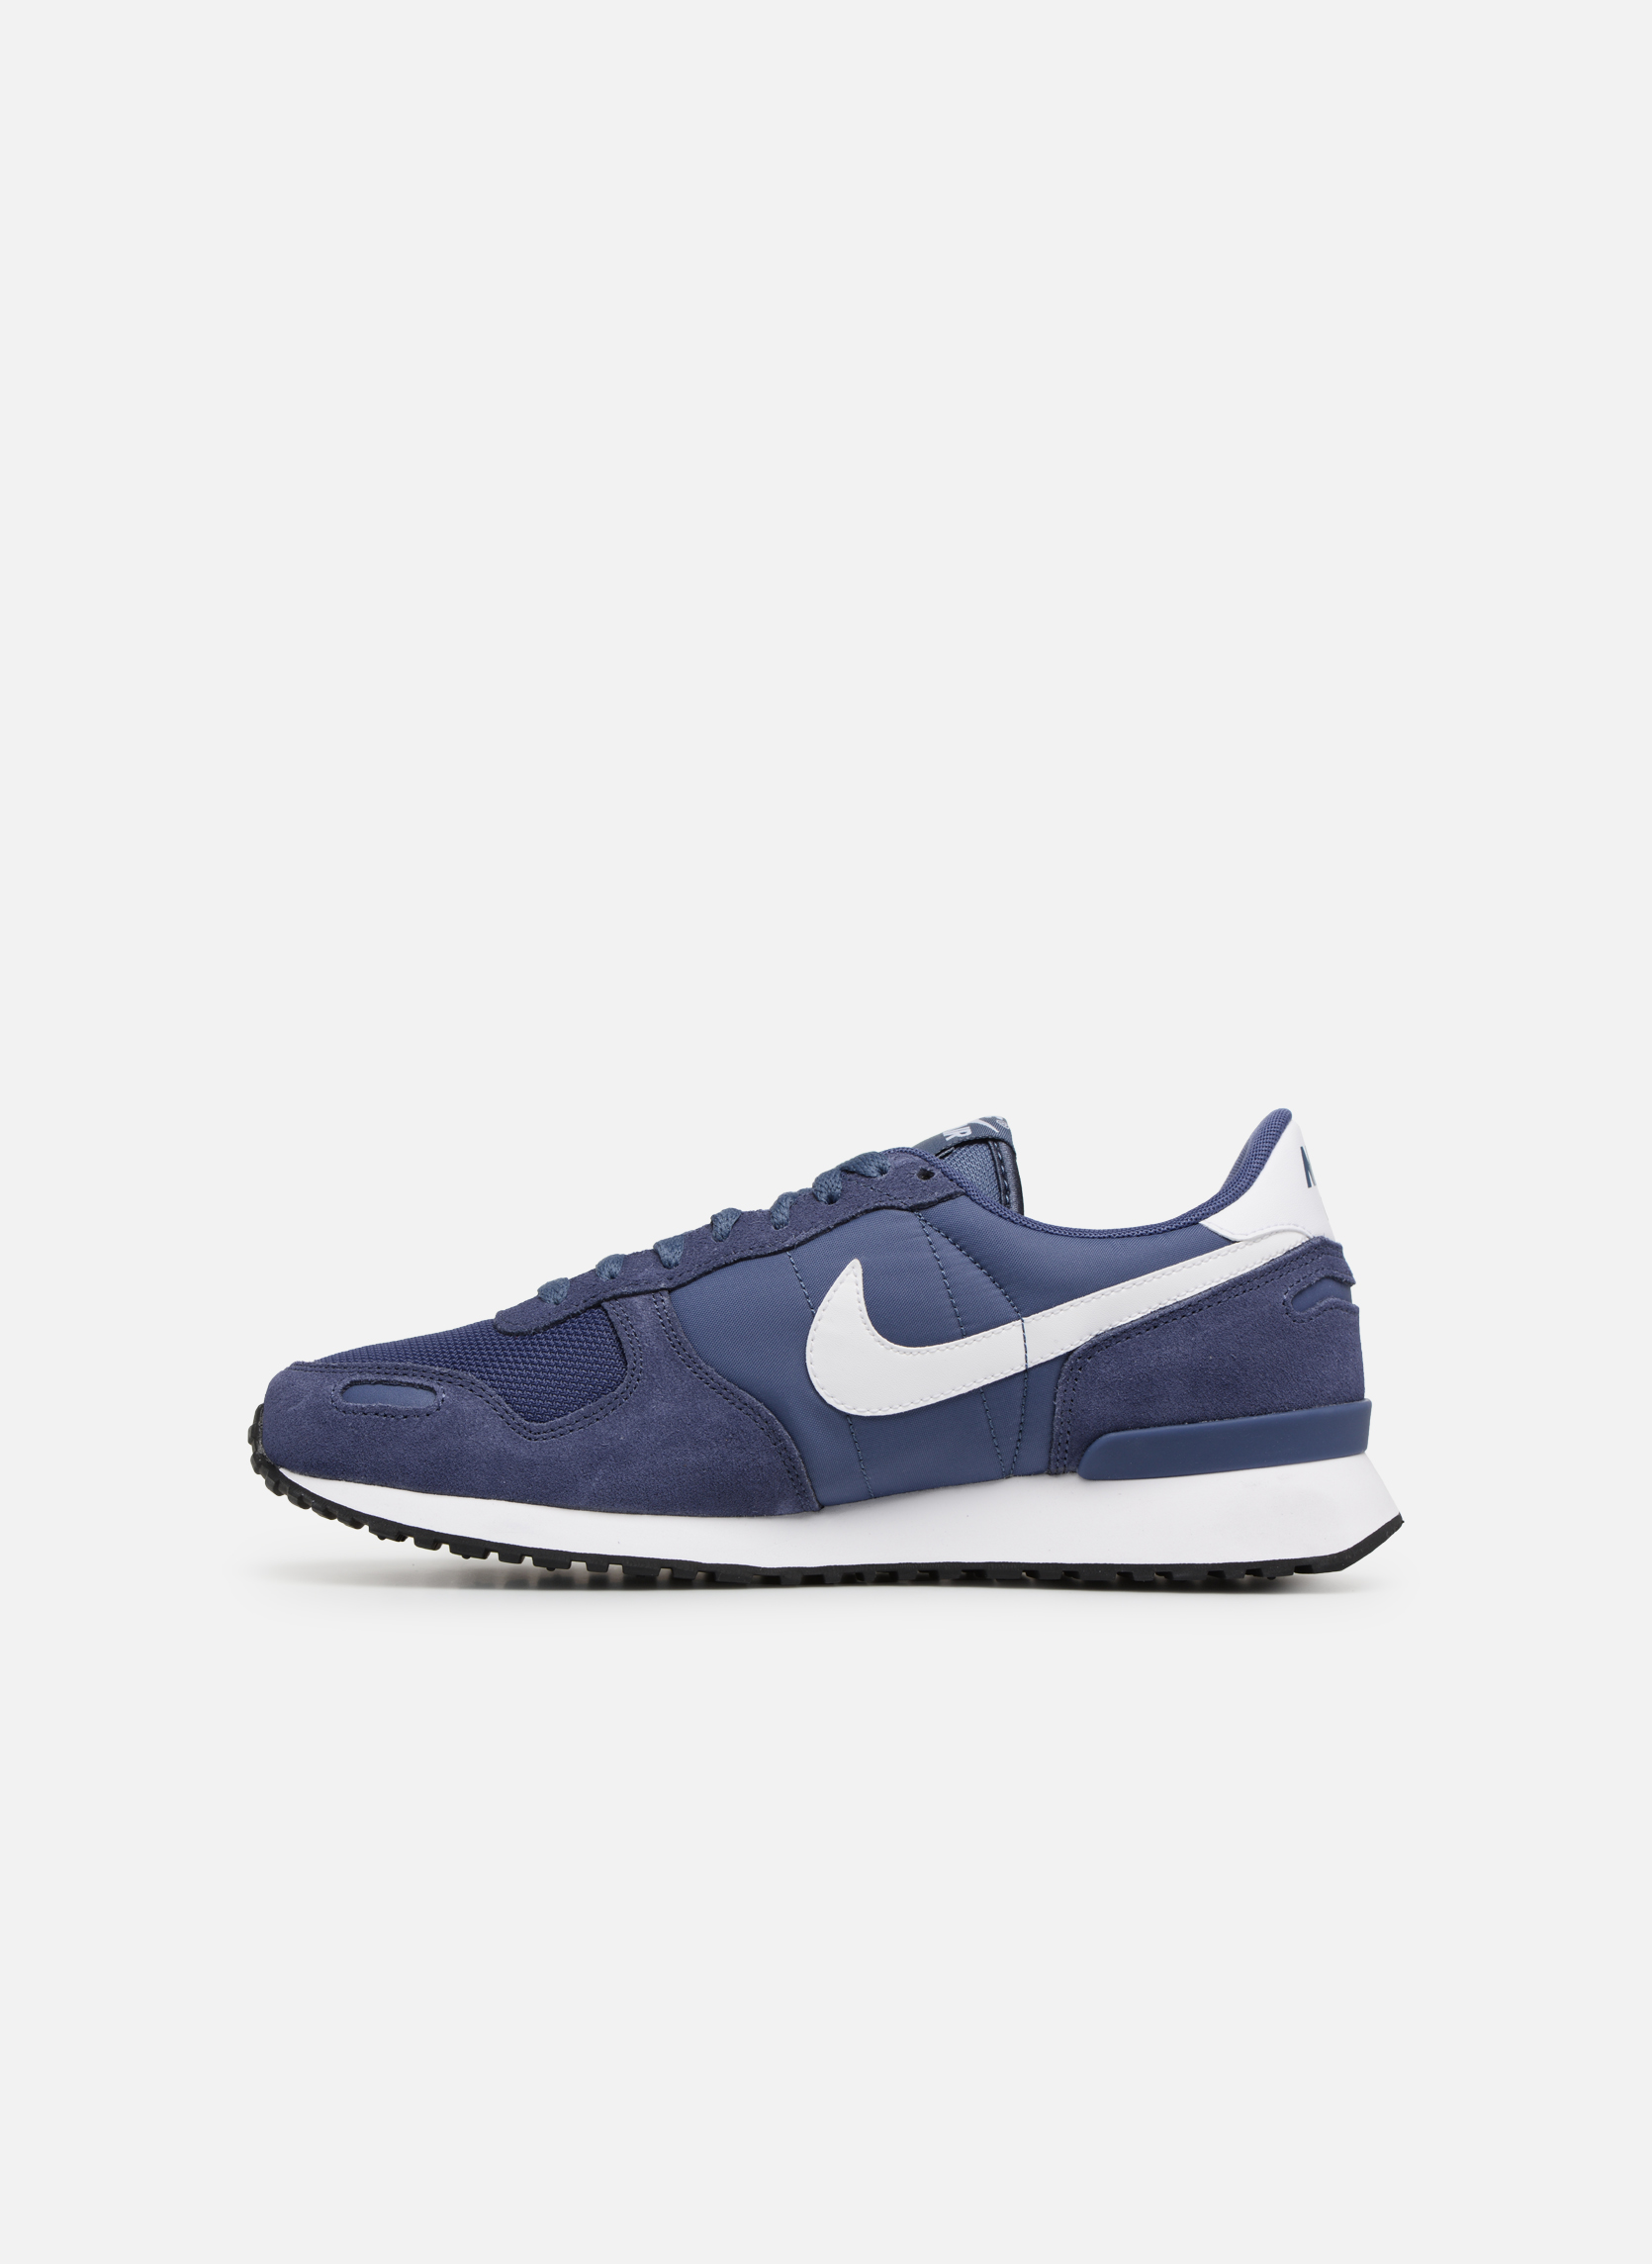 Blue Recall/White-Diffused Blue-Black Nike Nike Air Vrtx (Bleu)